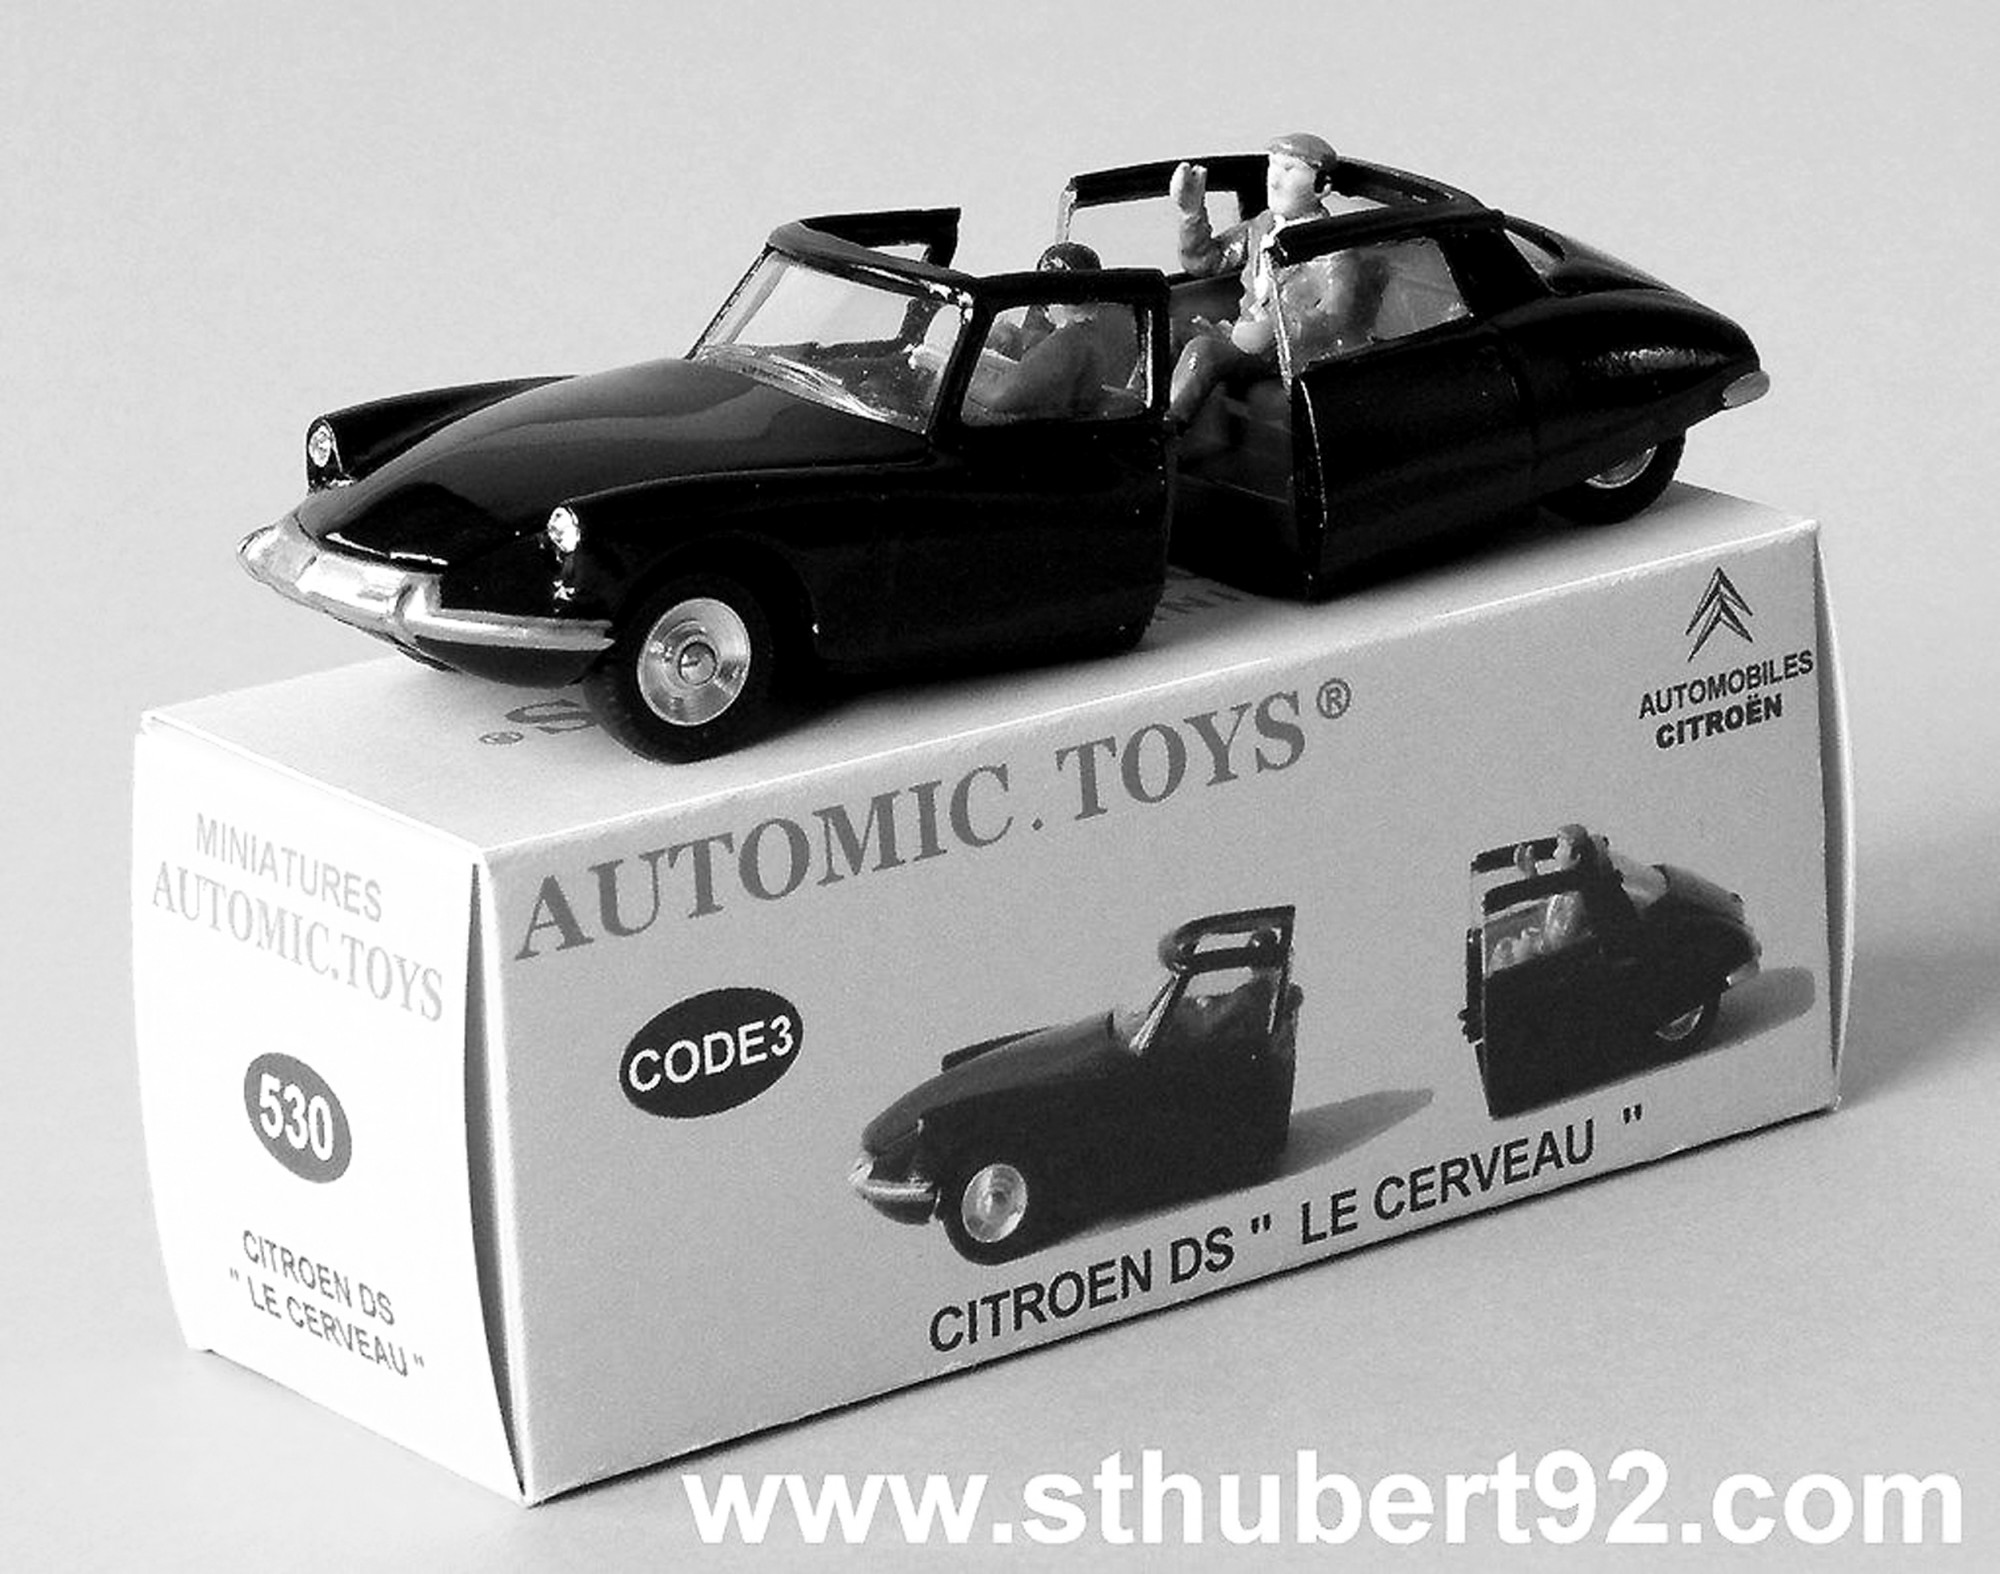 10,5-garage-citroen-clamart-unique-citroen-ds-19-quotle-cerveauquot-dinky-toys-ancienne-ref-530-of-garage-citroen-clamart